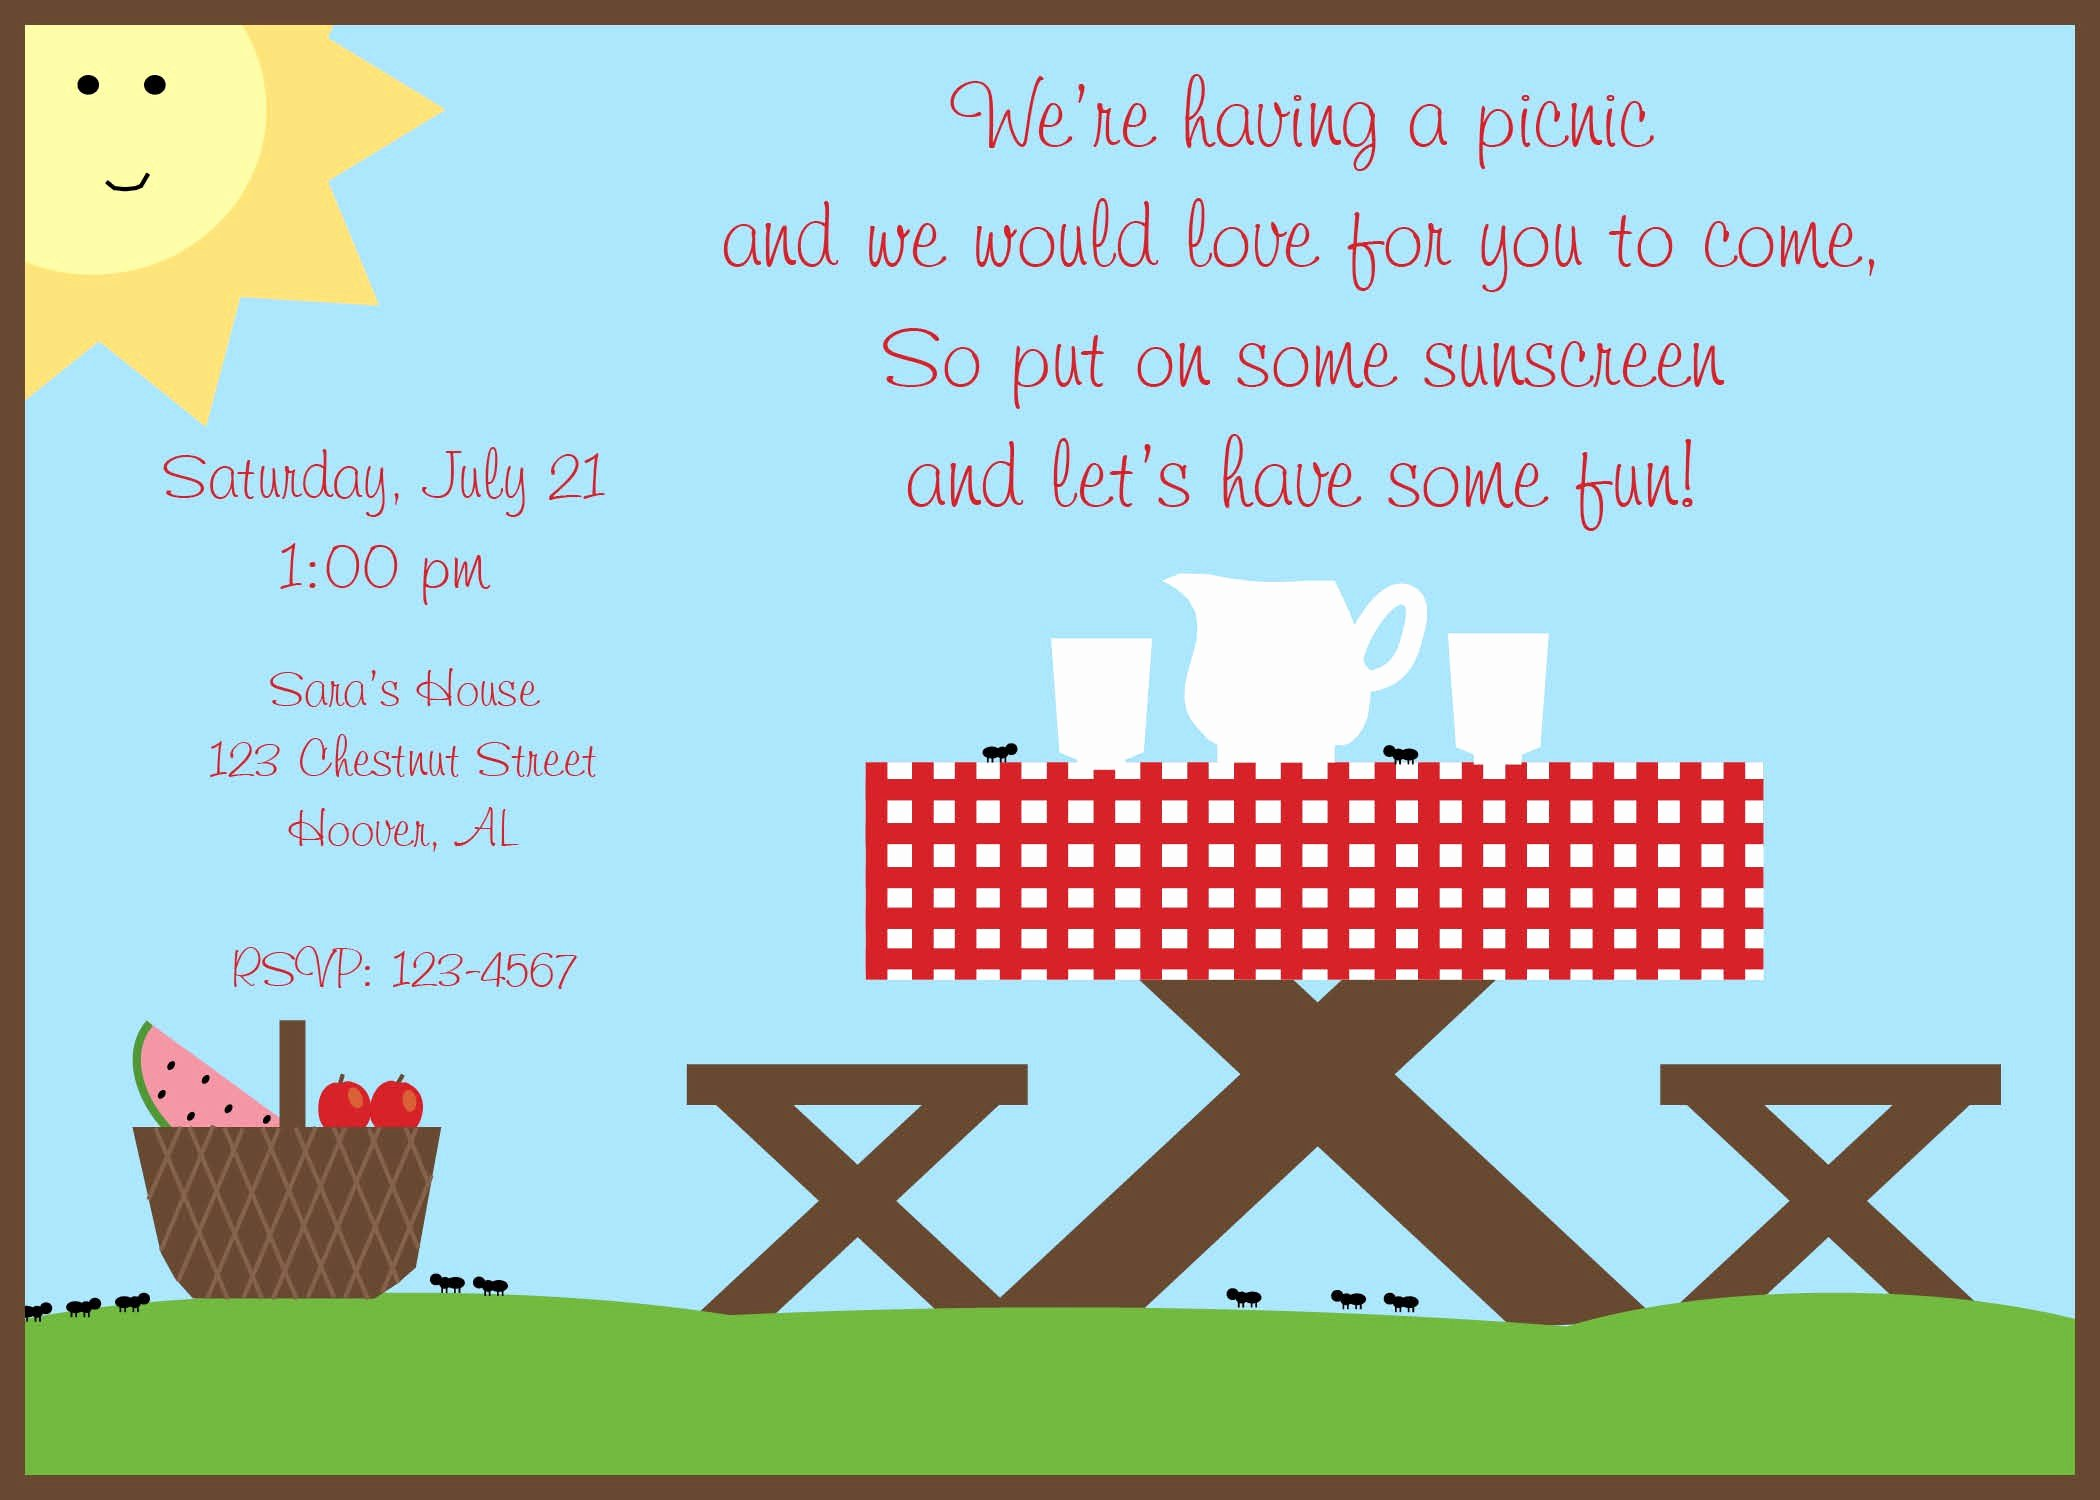 Picnic Birthday Party Invitations Unique Summer Picnic Invitation Summer Party by Lilypadboutiquestore